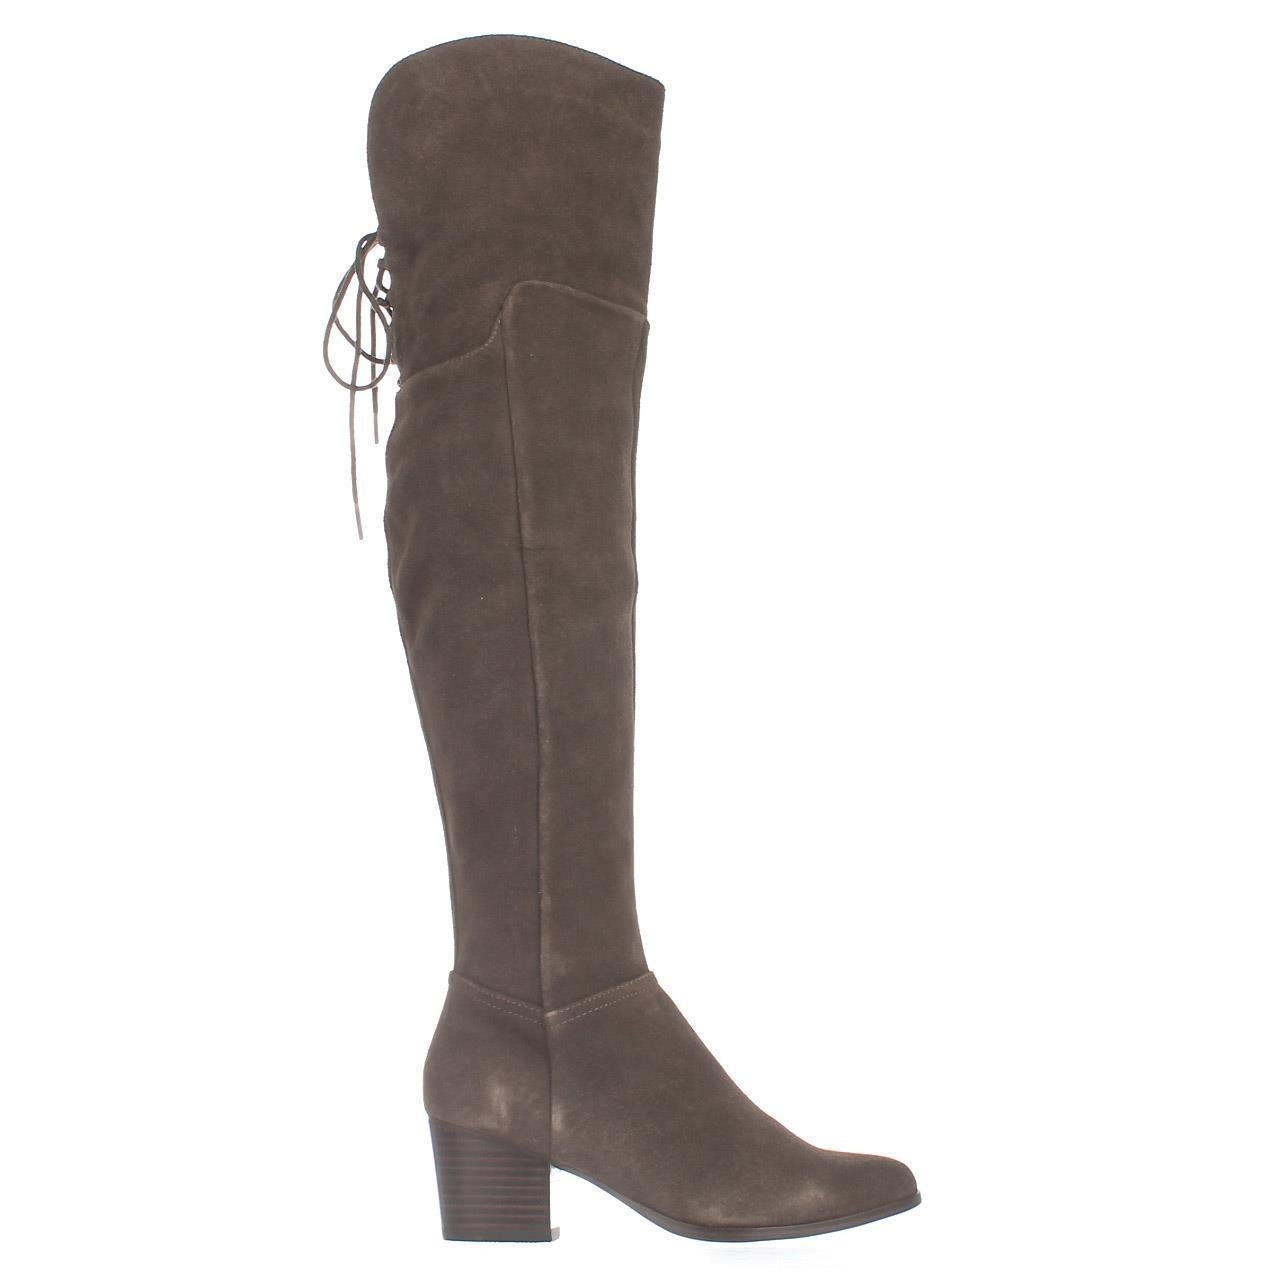 85946cbf0df Shop Aldo Jeffres Over-The-Knee Rear Lace Boots